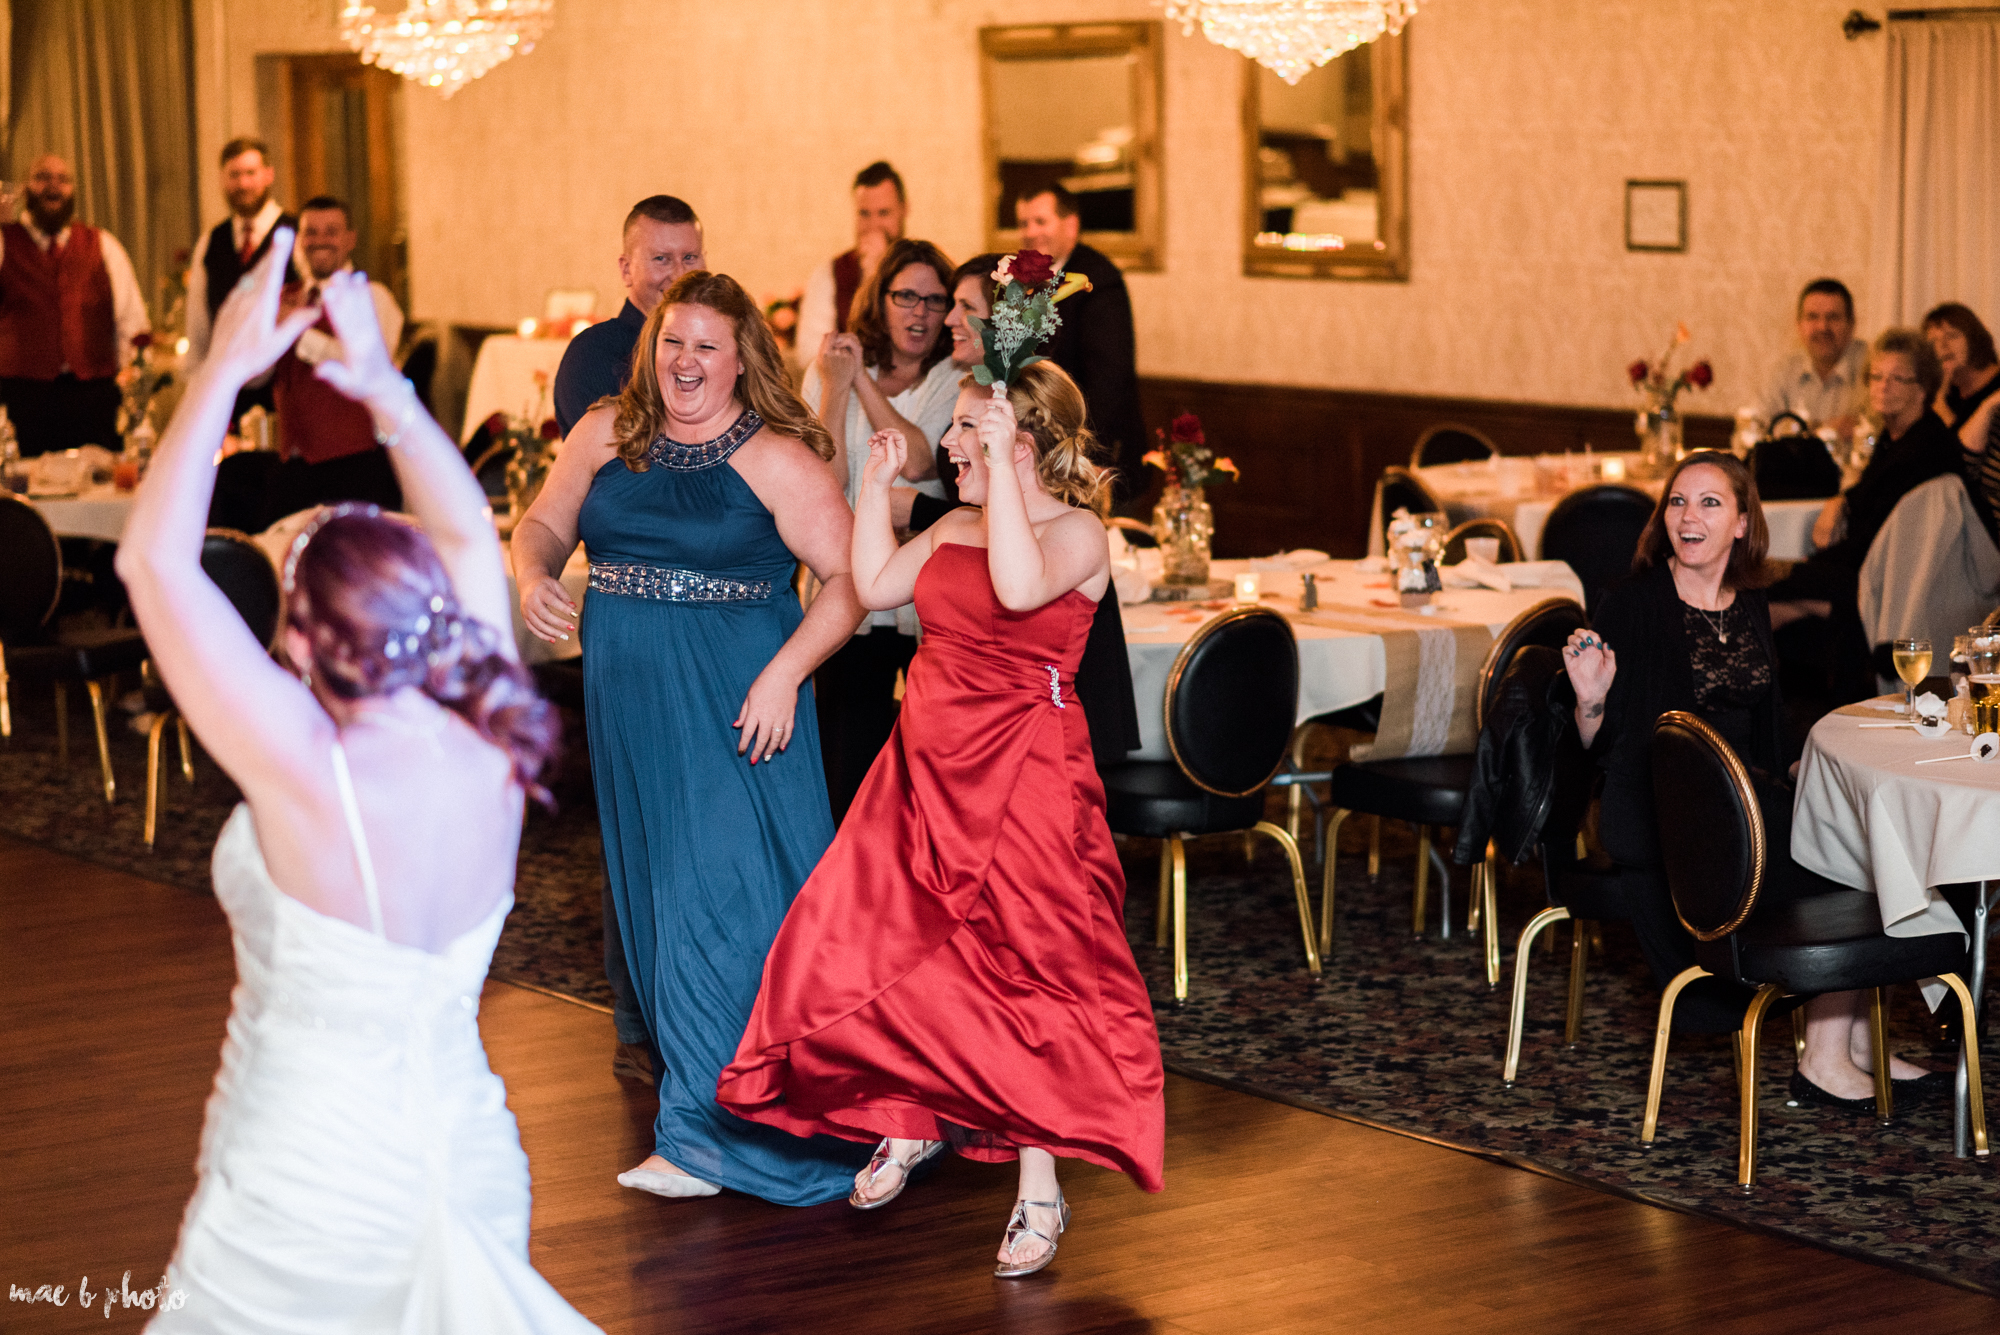 tracey and aaron's personal fall wedding at tiffany's banquet center in brookfield ohio-107.jpg